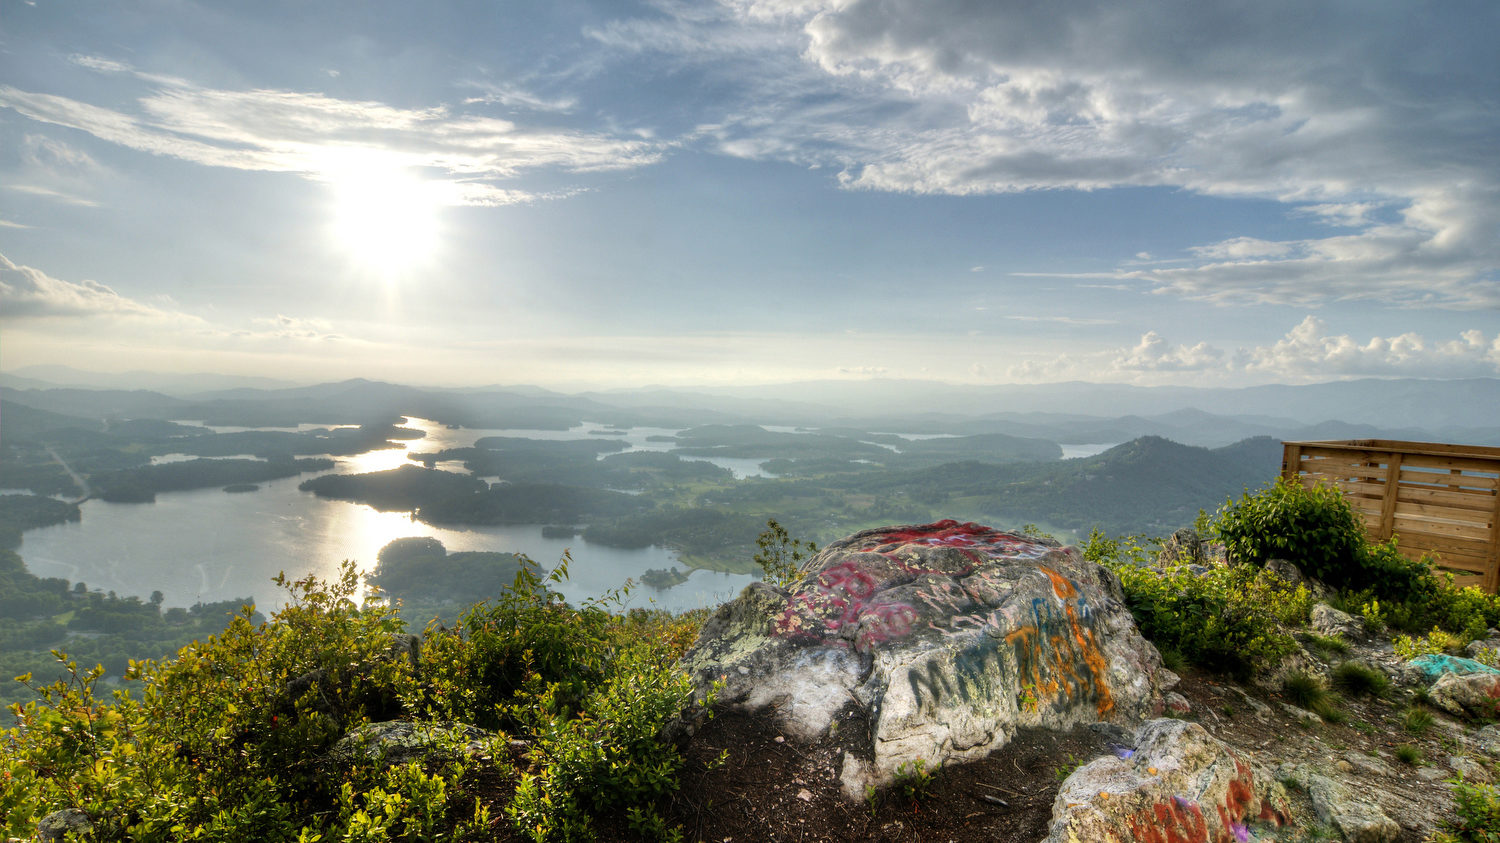 The view of Chatuge Lake from Bell Mountain high above Hiawassee, GA on Friday, June 16, 2017. Copyright 2017 Jason Barnette